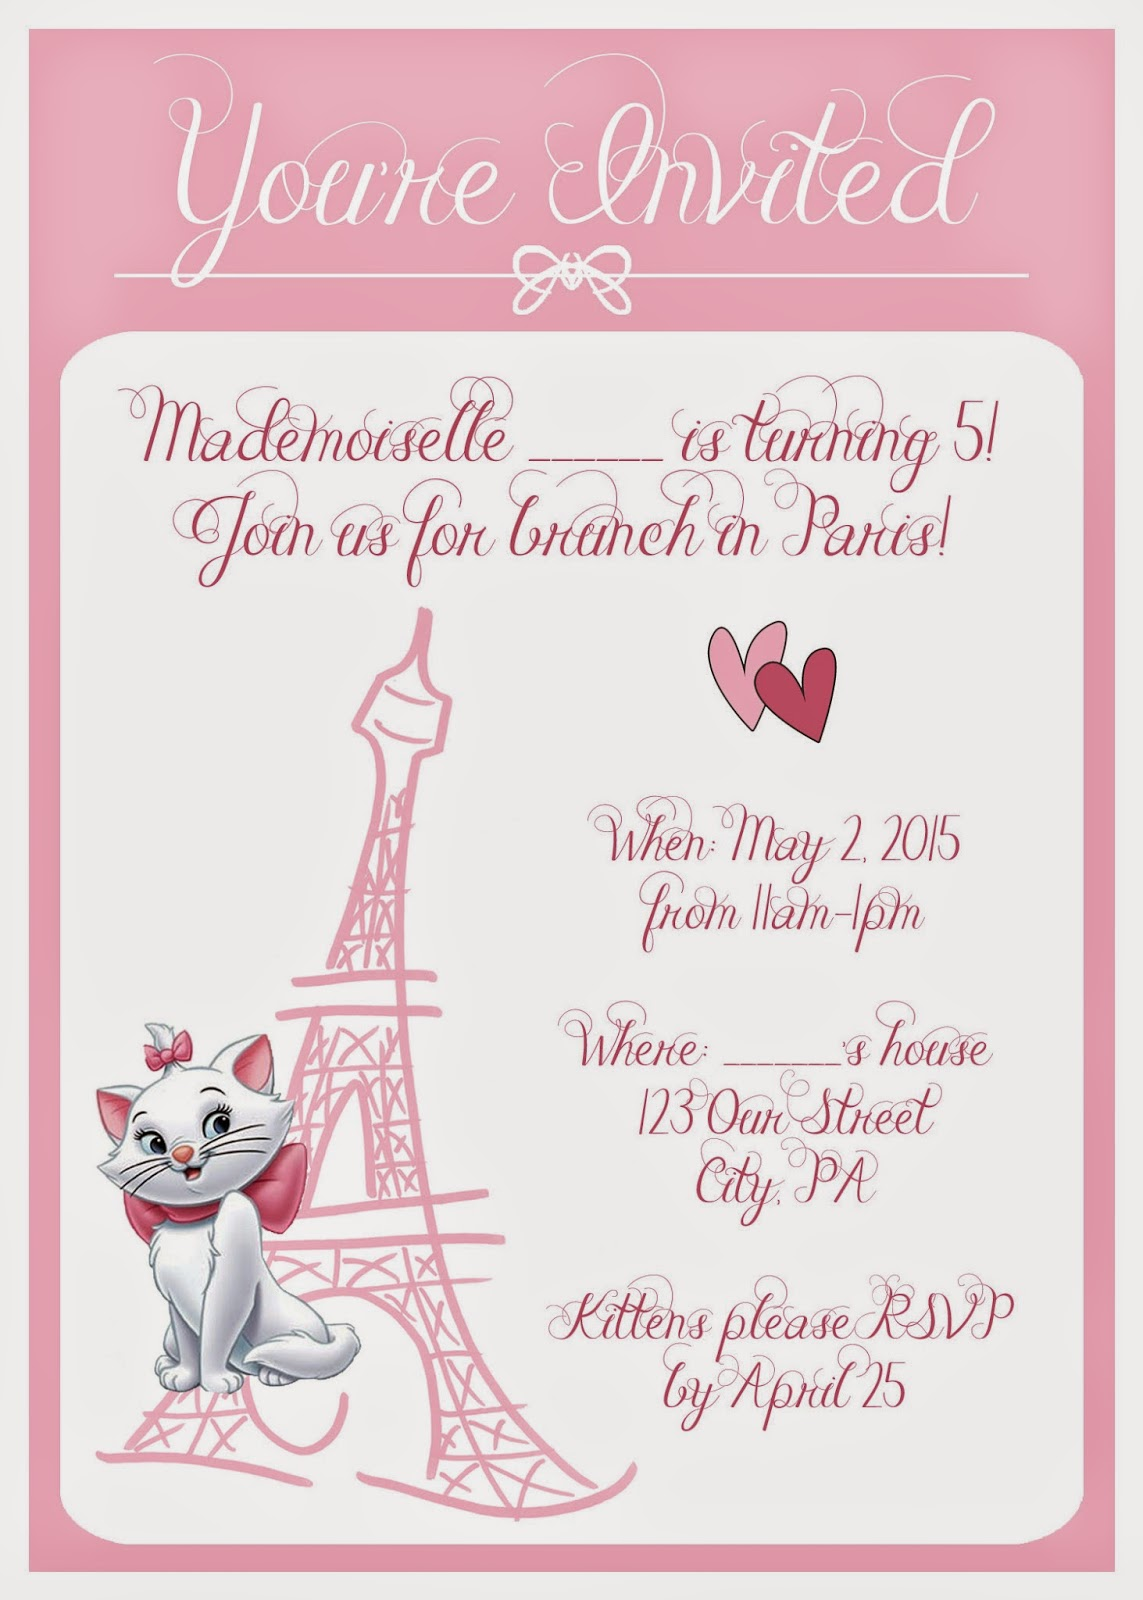 Moms Tot School Aristocats Kitten Birthday Party